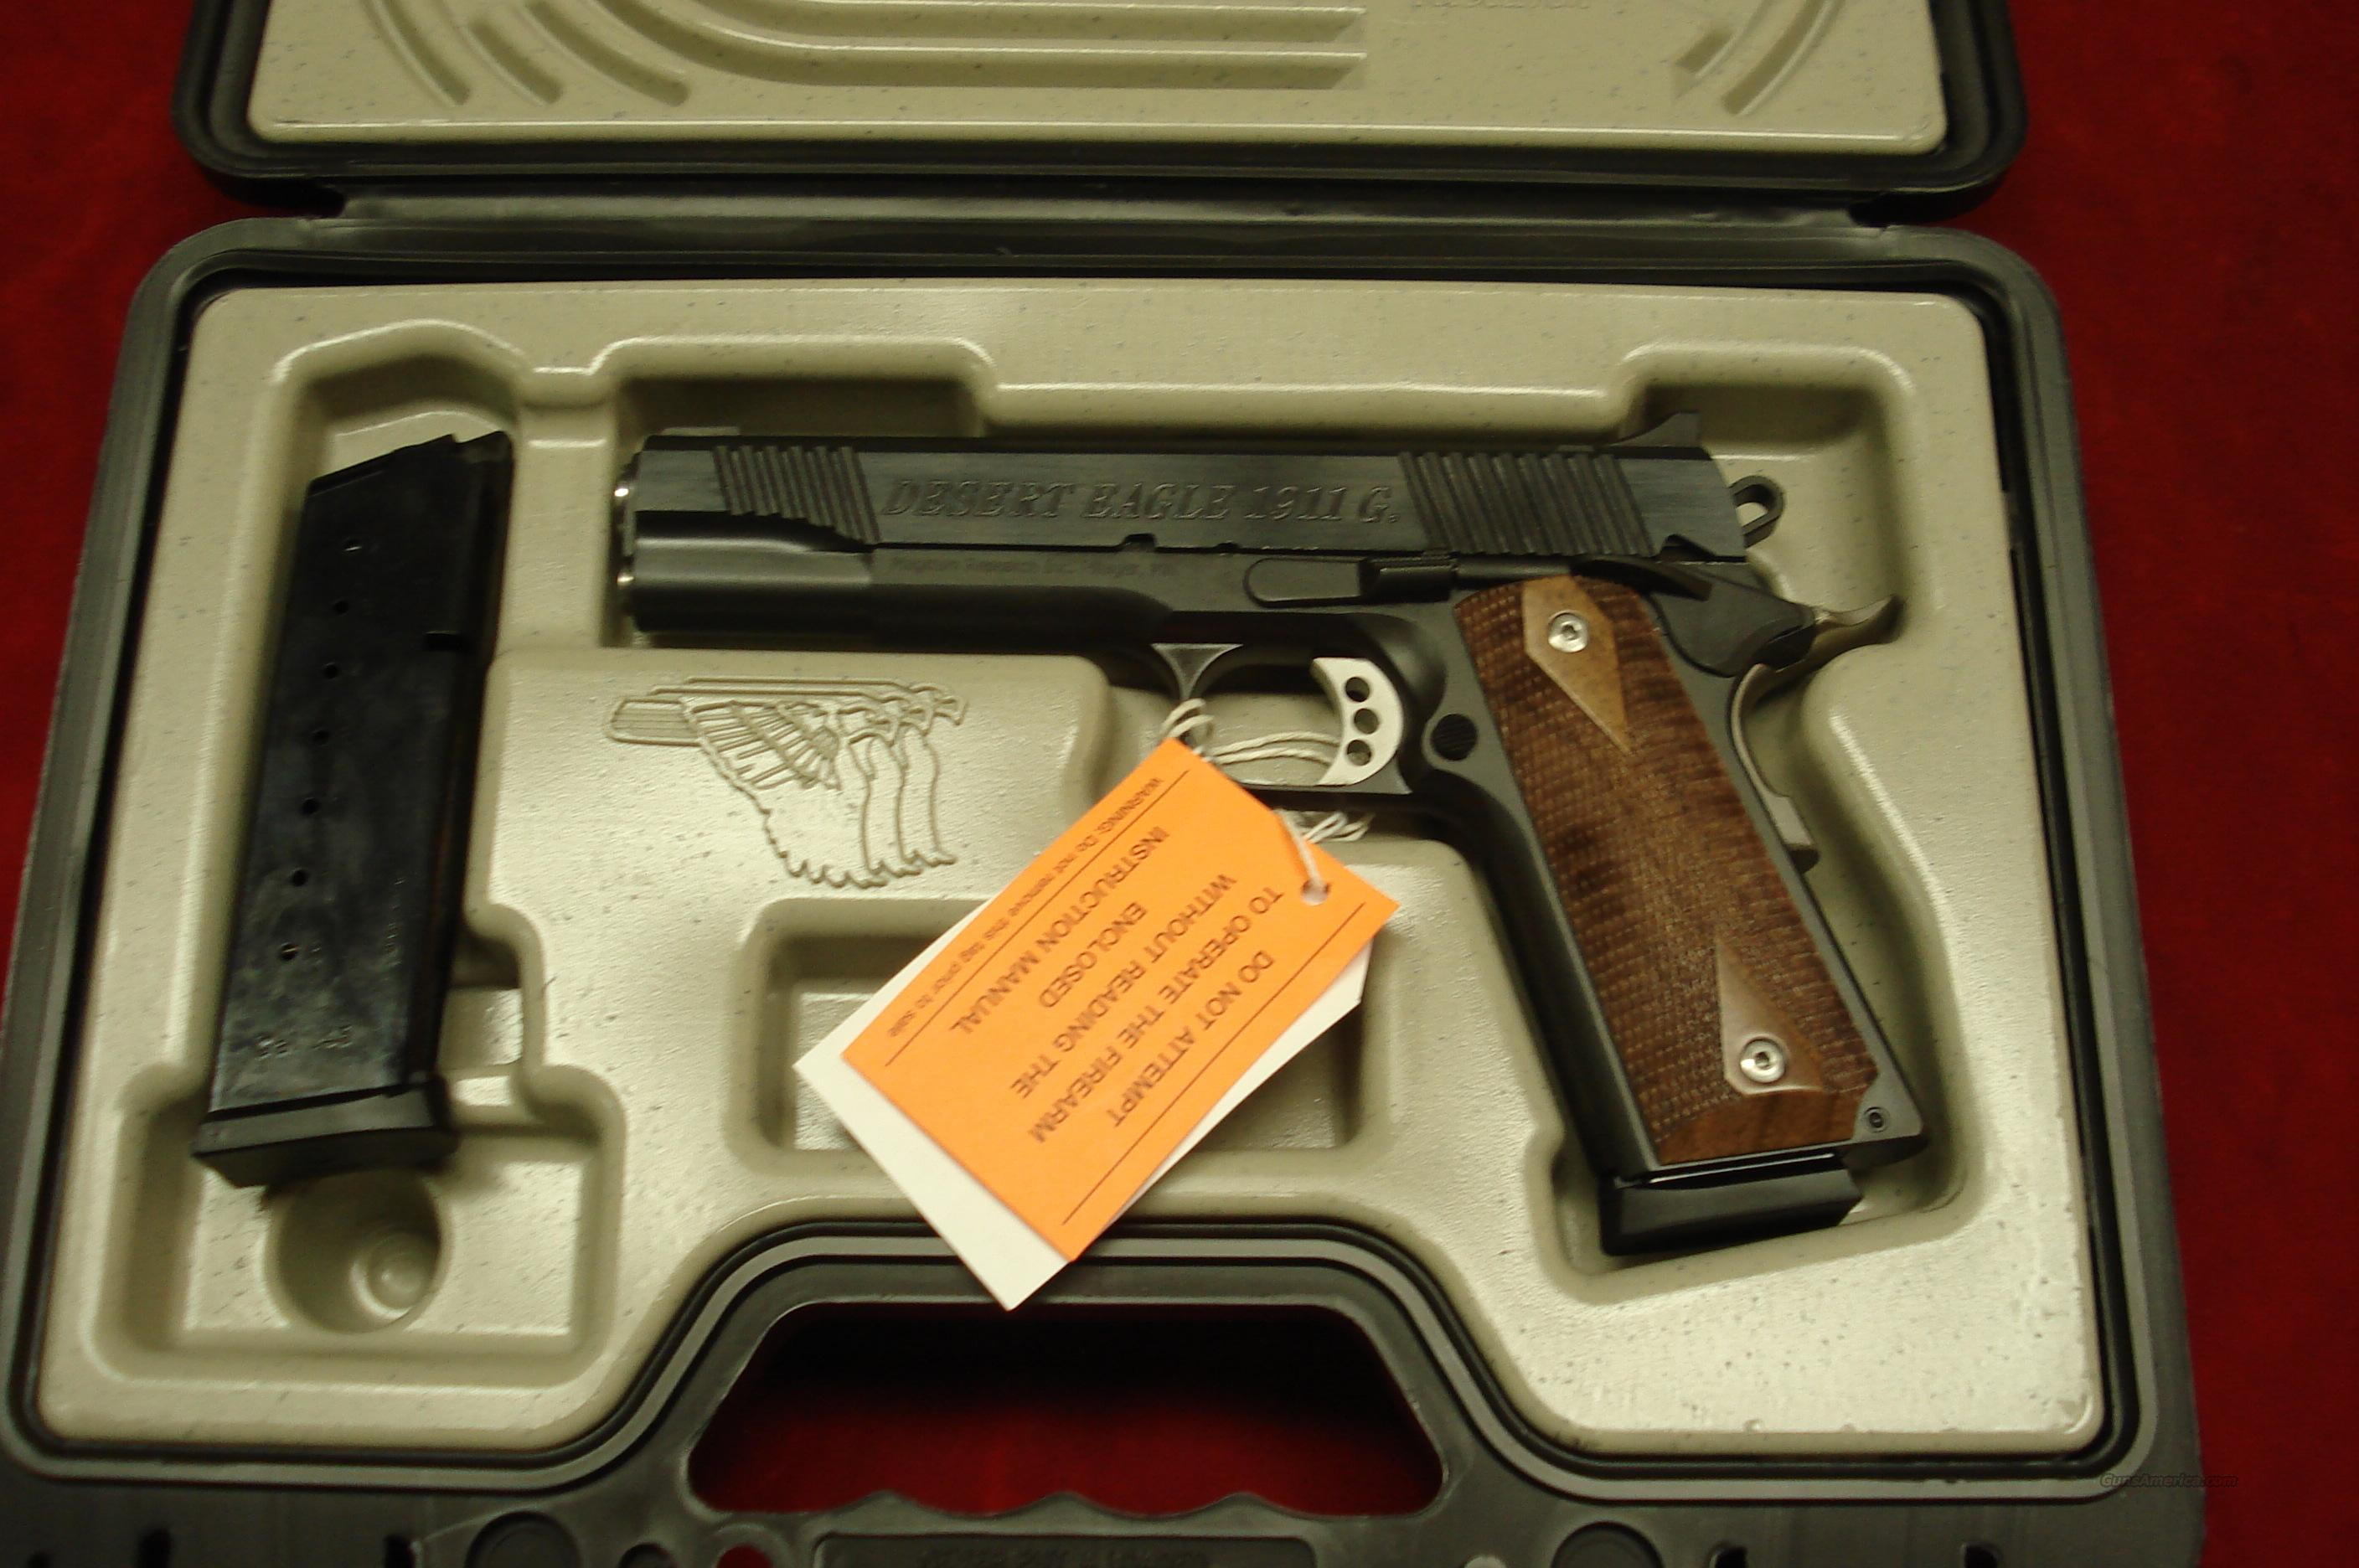 MAGNUM RESEARCH DEASERT EAGLE 1911 45ACP NEW (DE1911G)  Guns > Pistols > Desert Eagle/IMI Pistols > Other